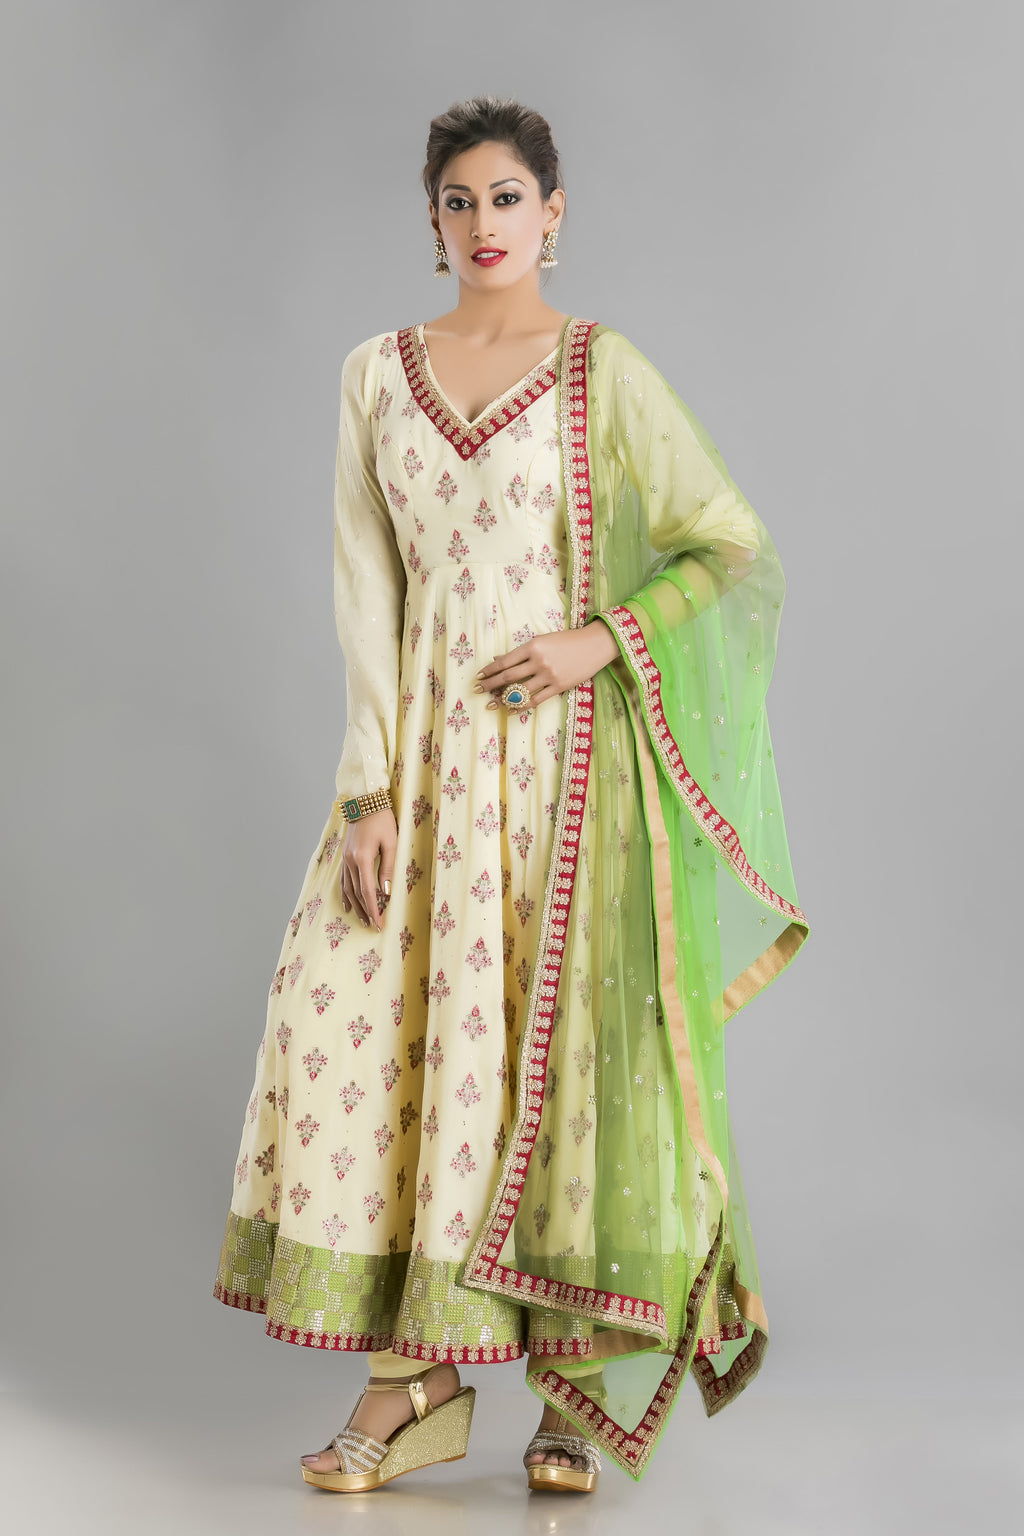 Subah- For a fresh new look at traditional anarkali